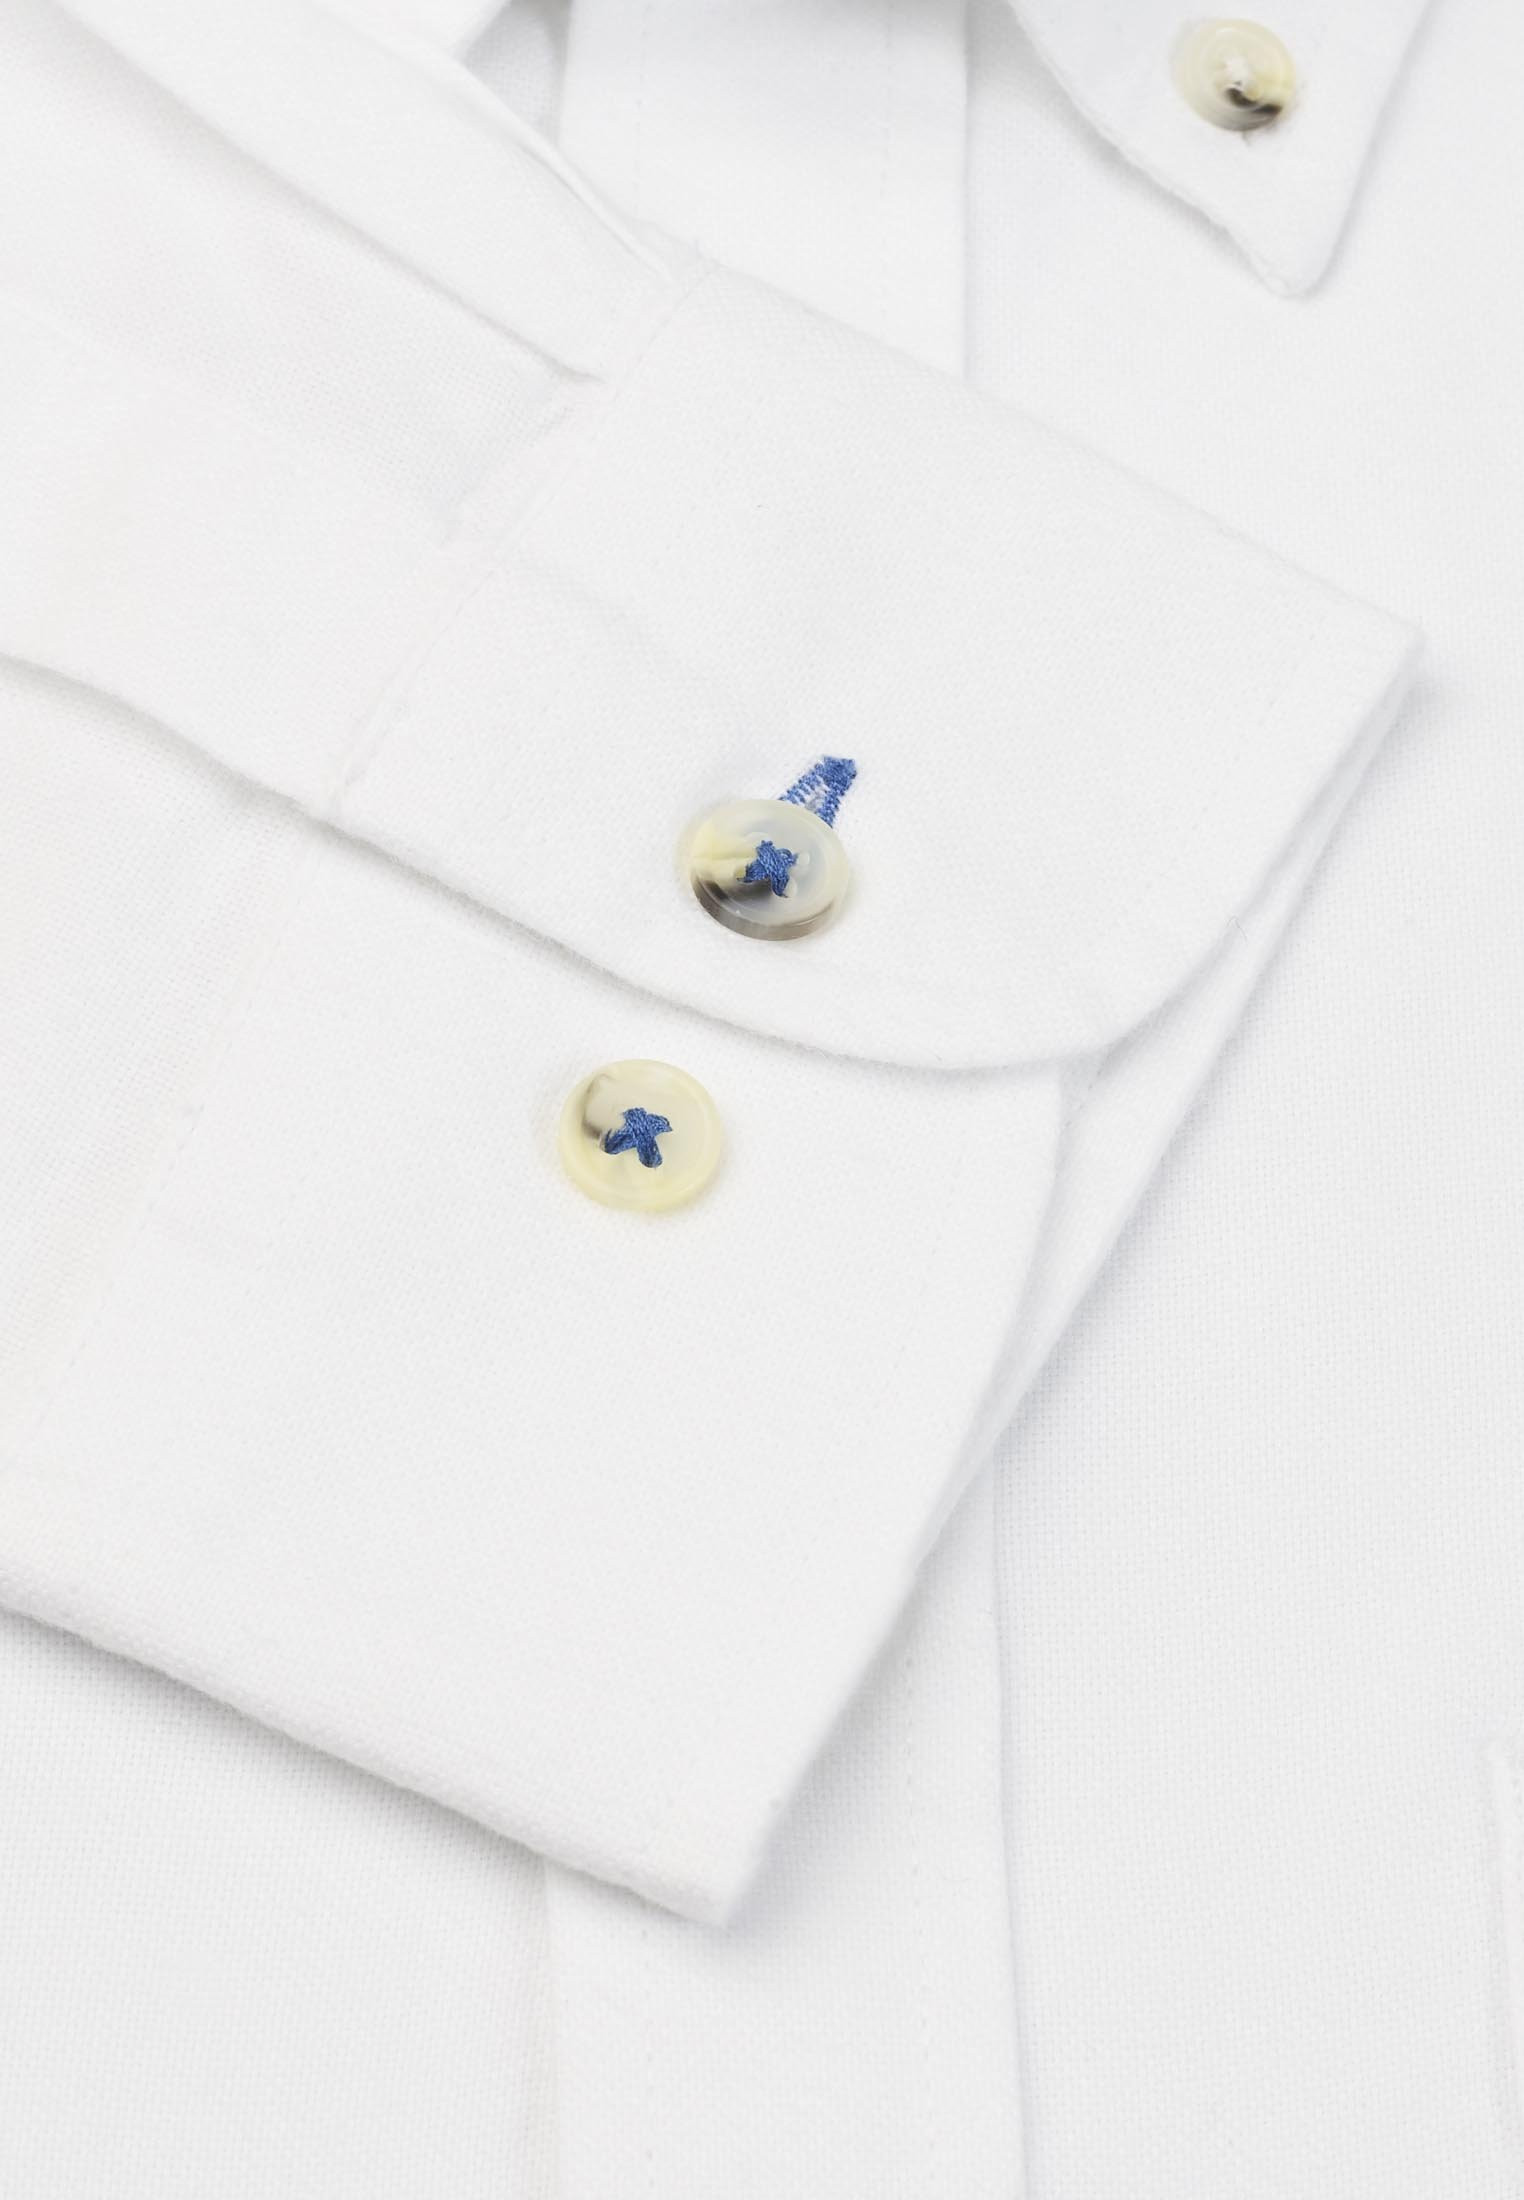 Tailored Fit Long Sleeve White Soft Touch Oxford Button Down Collar Shirt